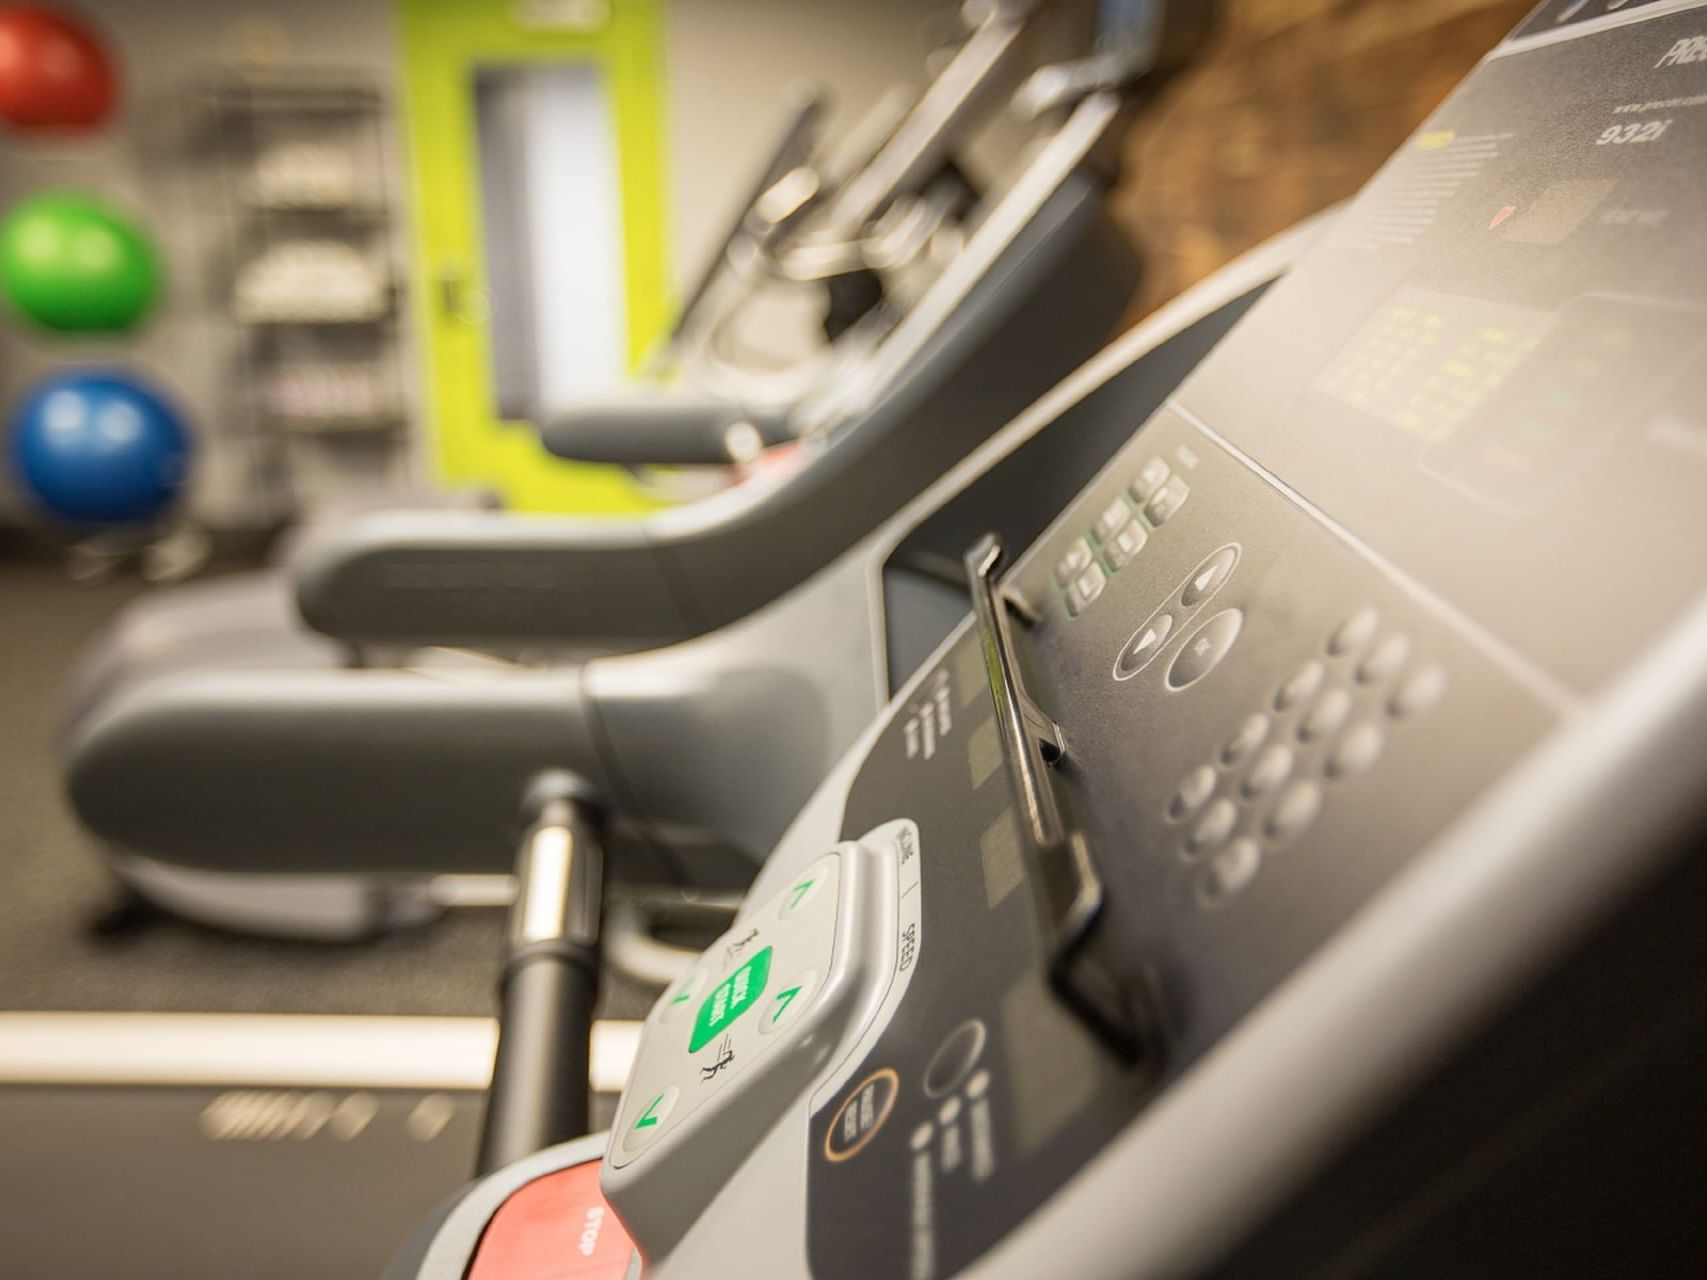 The fully-equipped fitness center at Paramount Hotel Seattle